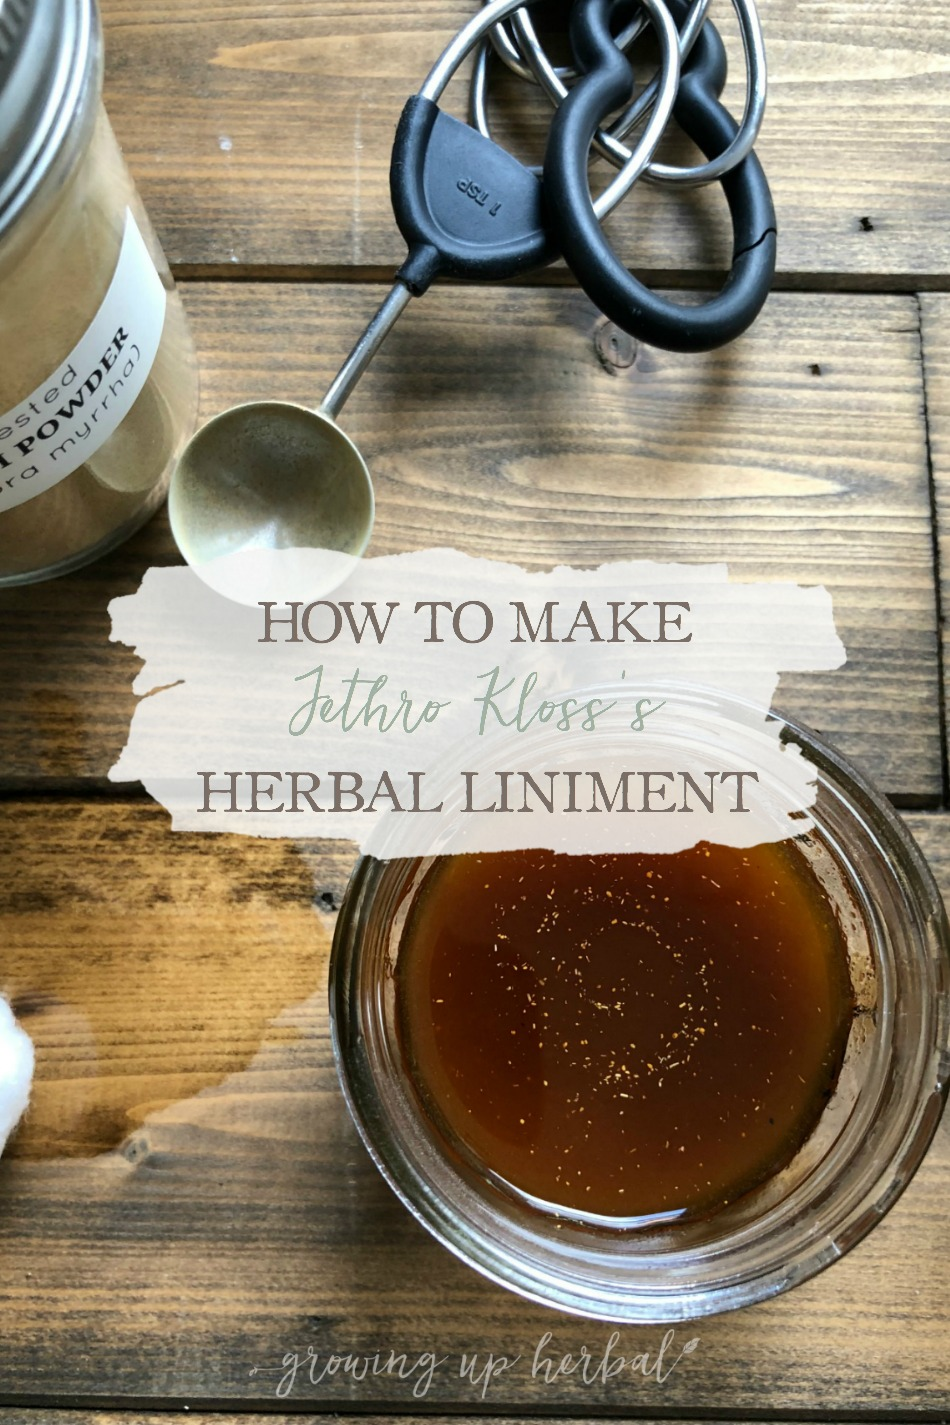 How To Make Jethro Kloss's Herbal Liniment   Growing Up Herbal   Here's a recipe for an external herbal disinfecting solution to include in your natural medicine cabinet!